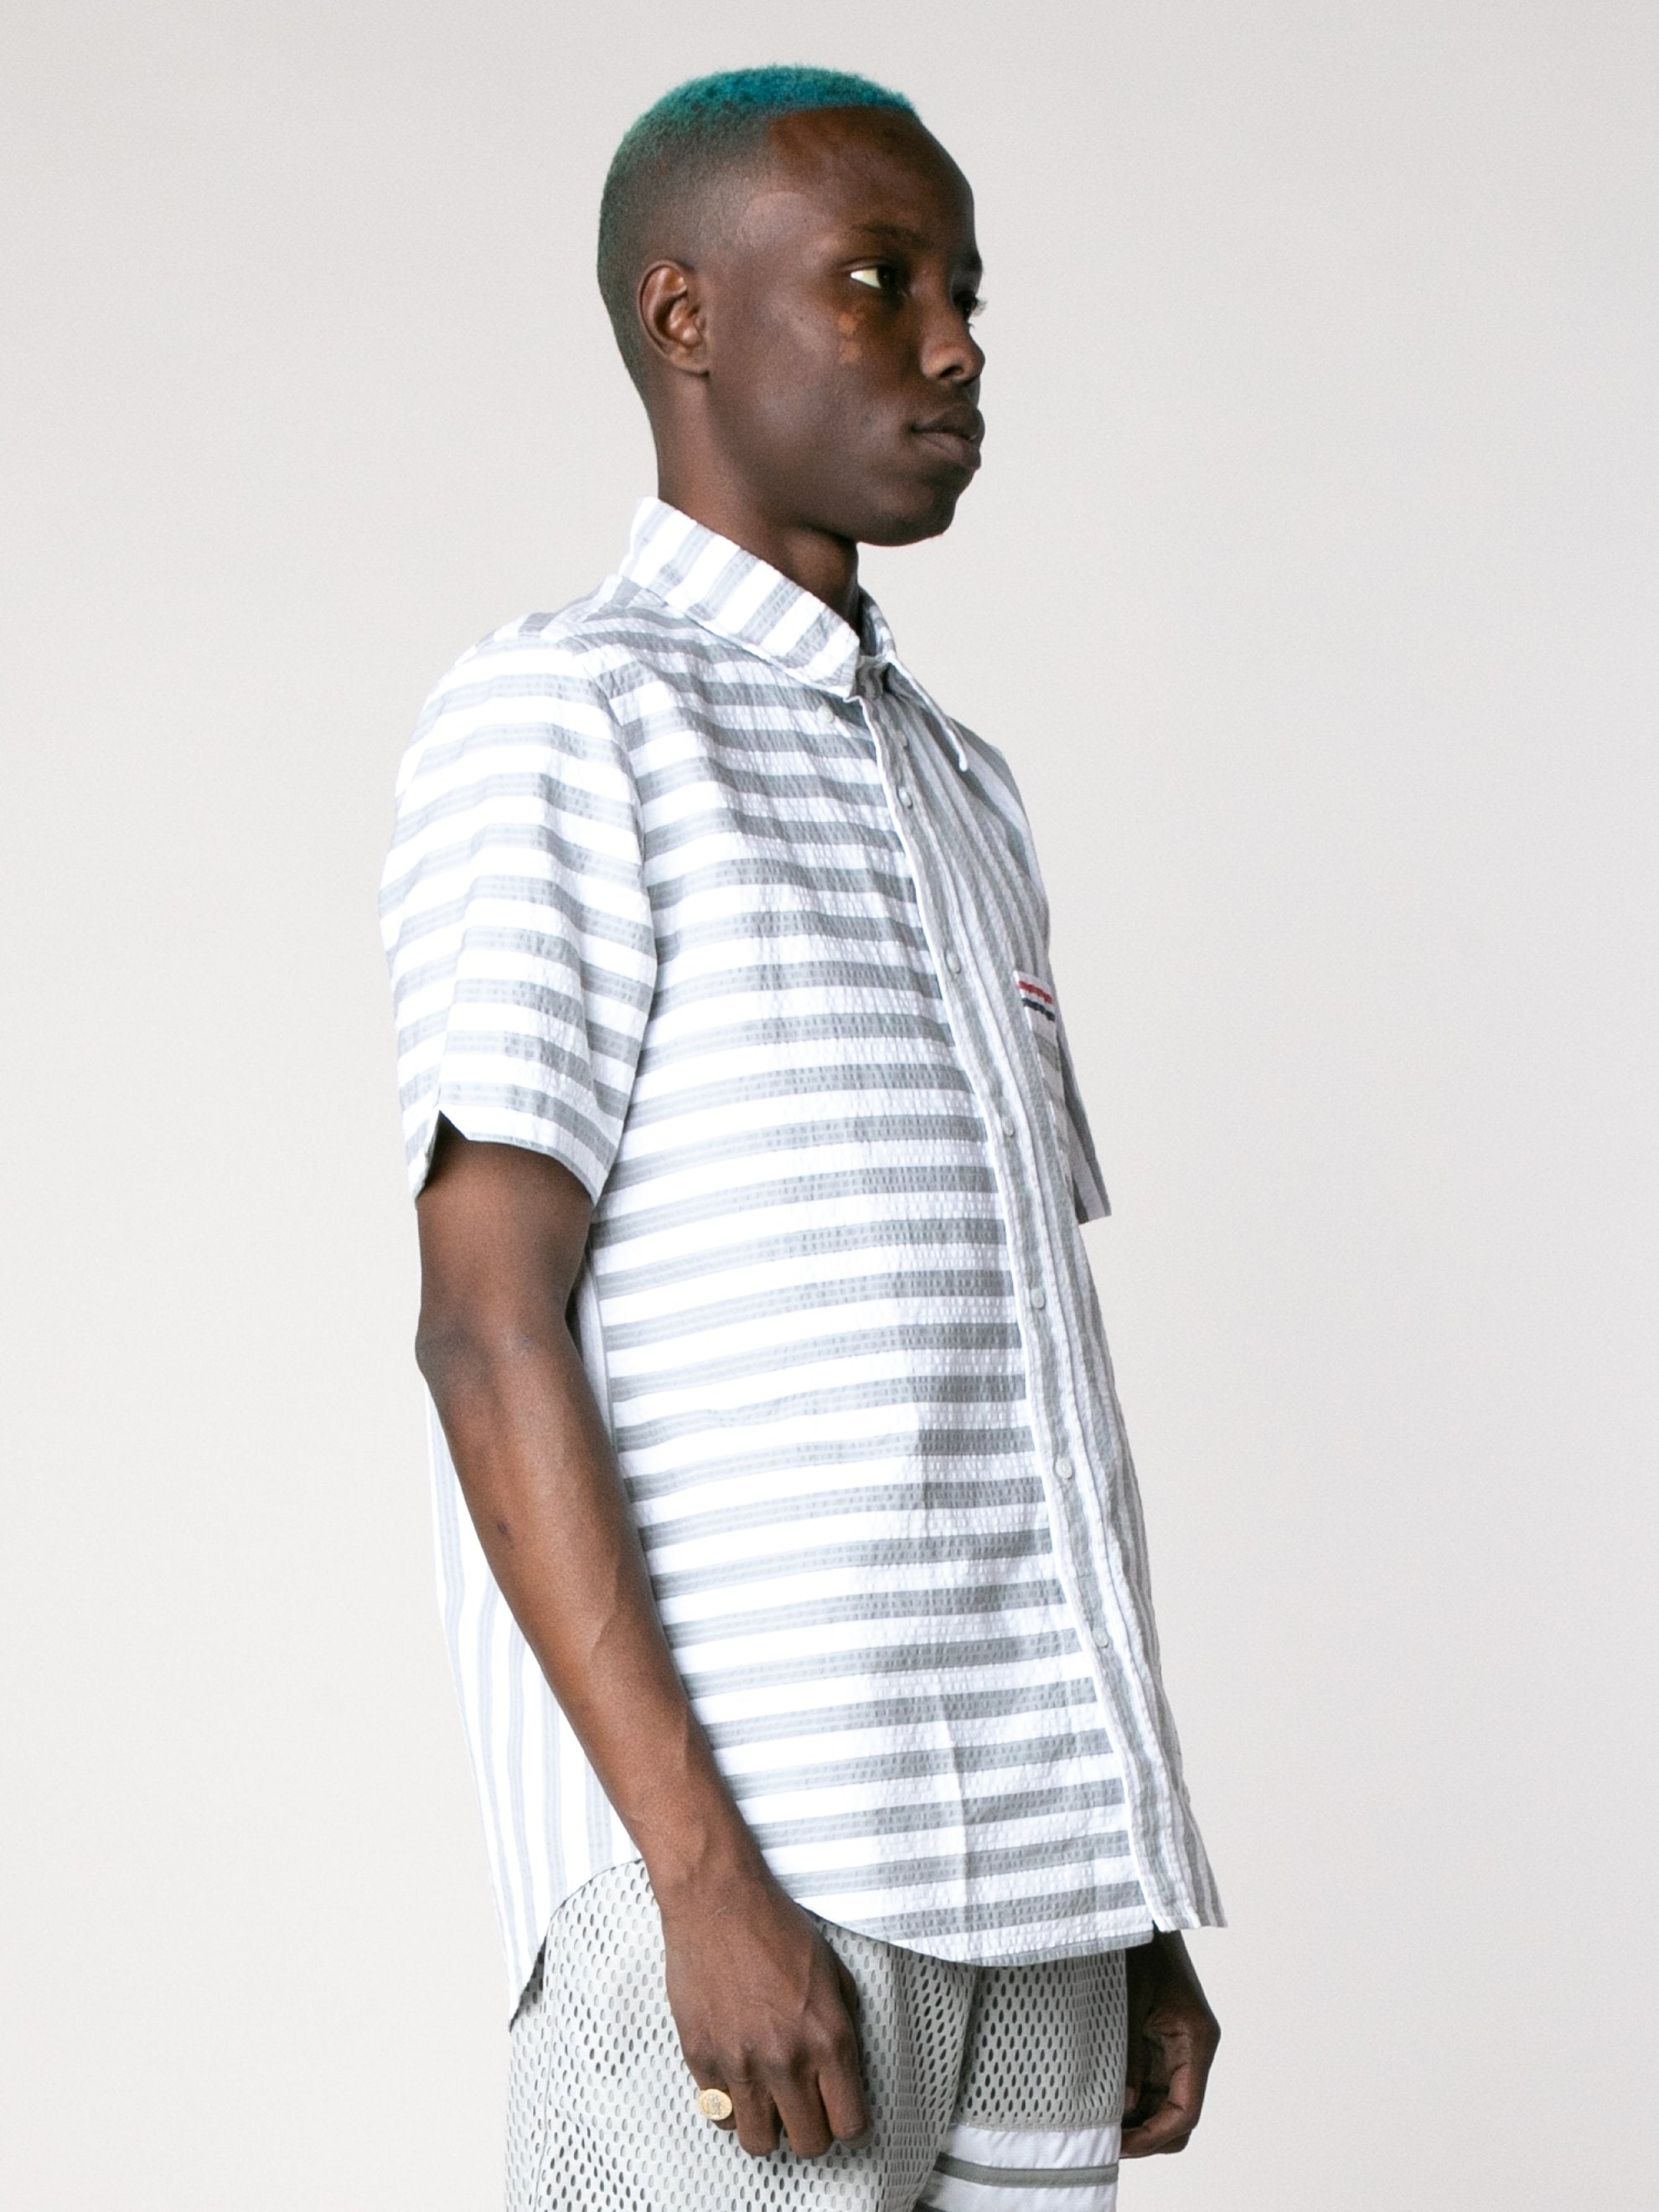 Med Grey Straight Fit Button Down Short Sleeve Shirt In Engineered RWB Wide Universty Stripe Shirt Seersucker 4